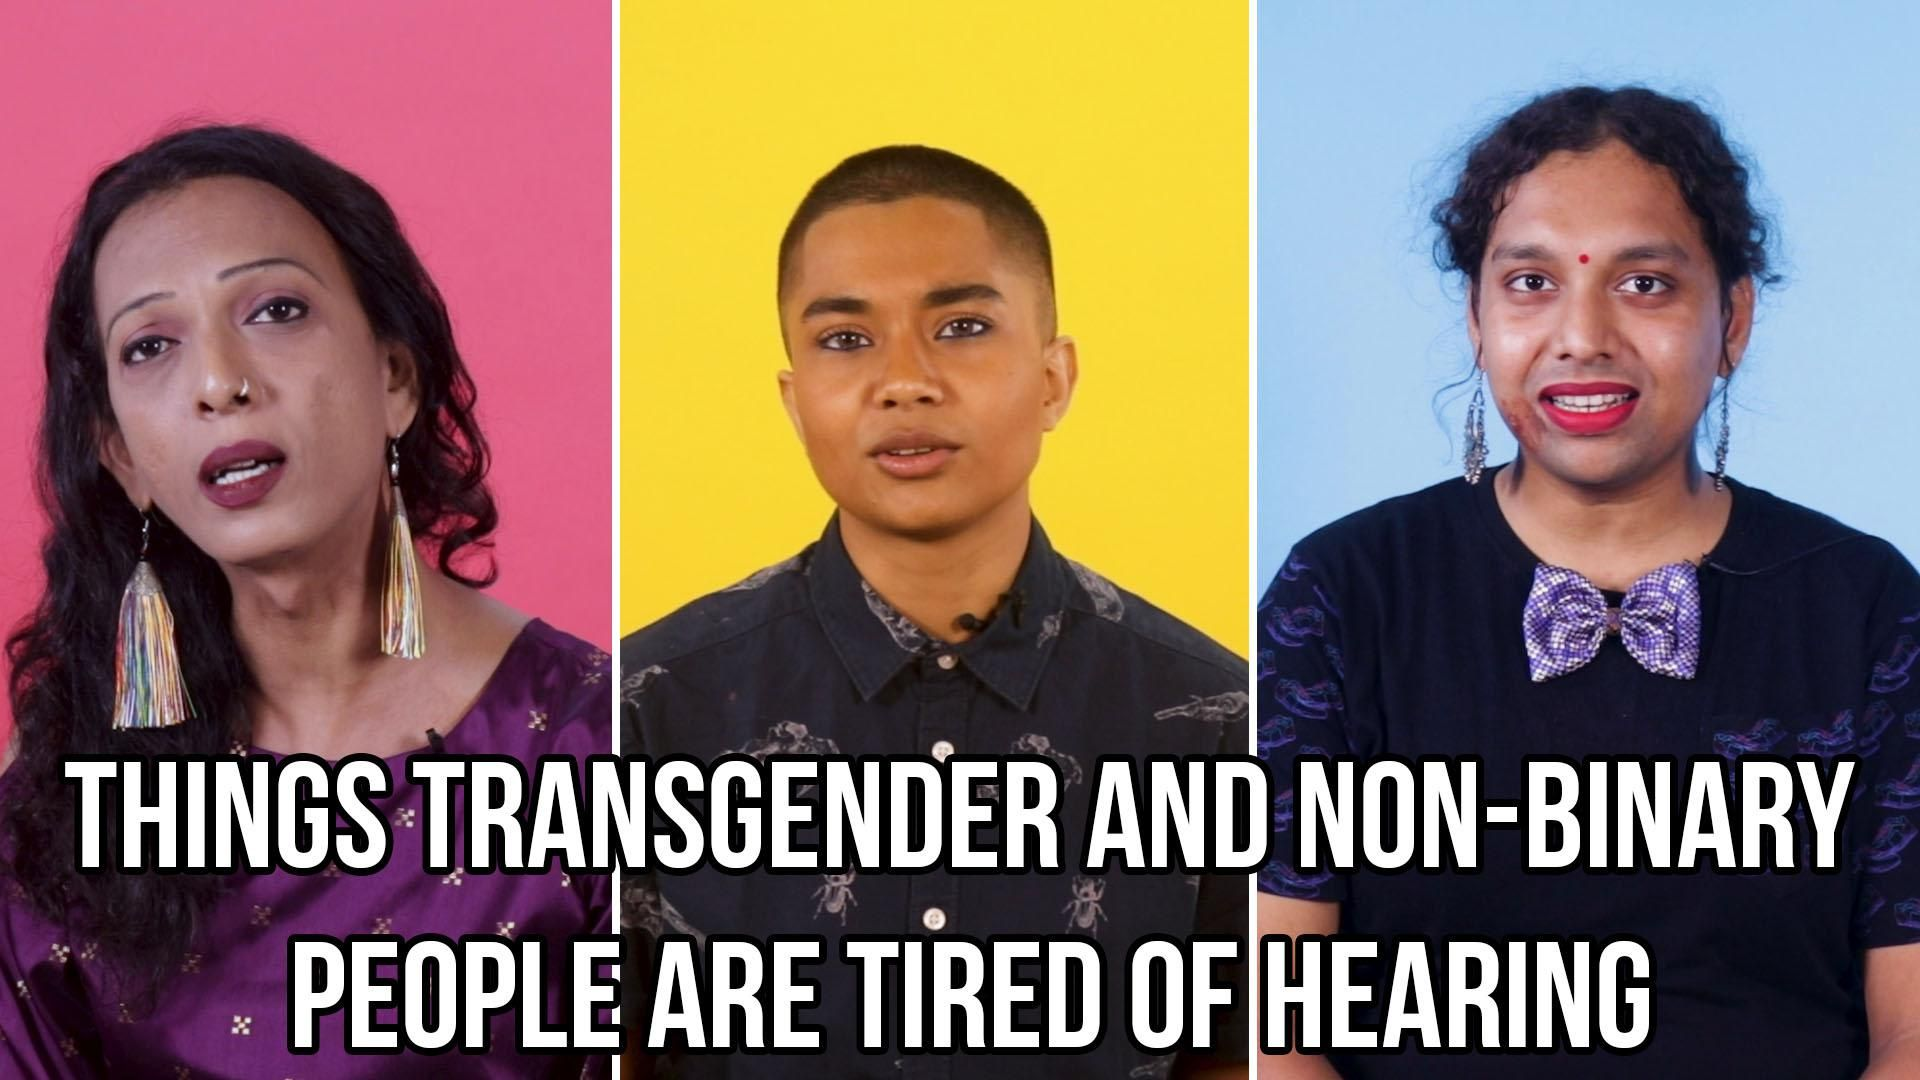 Watch: BuzzFeed Video - Things Transgender And Non-Binary People Are